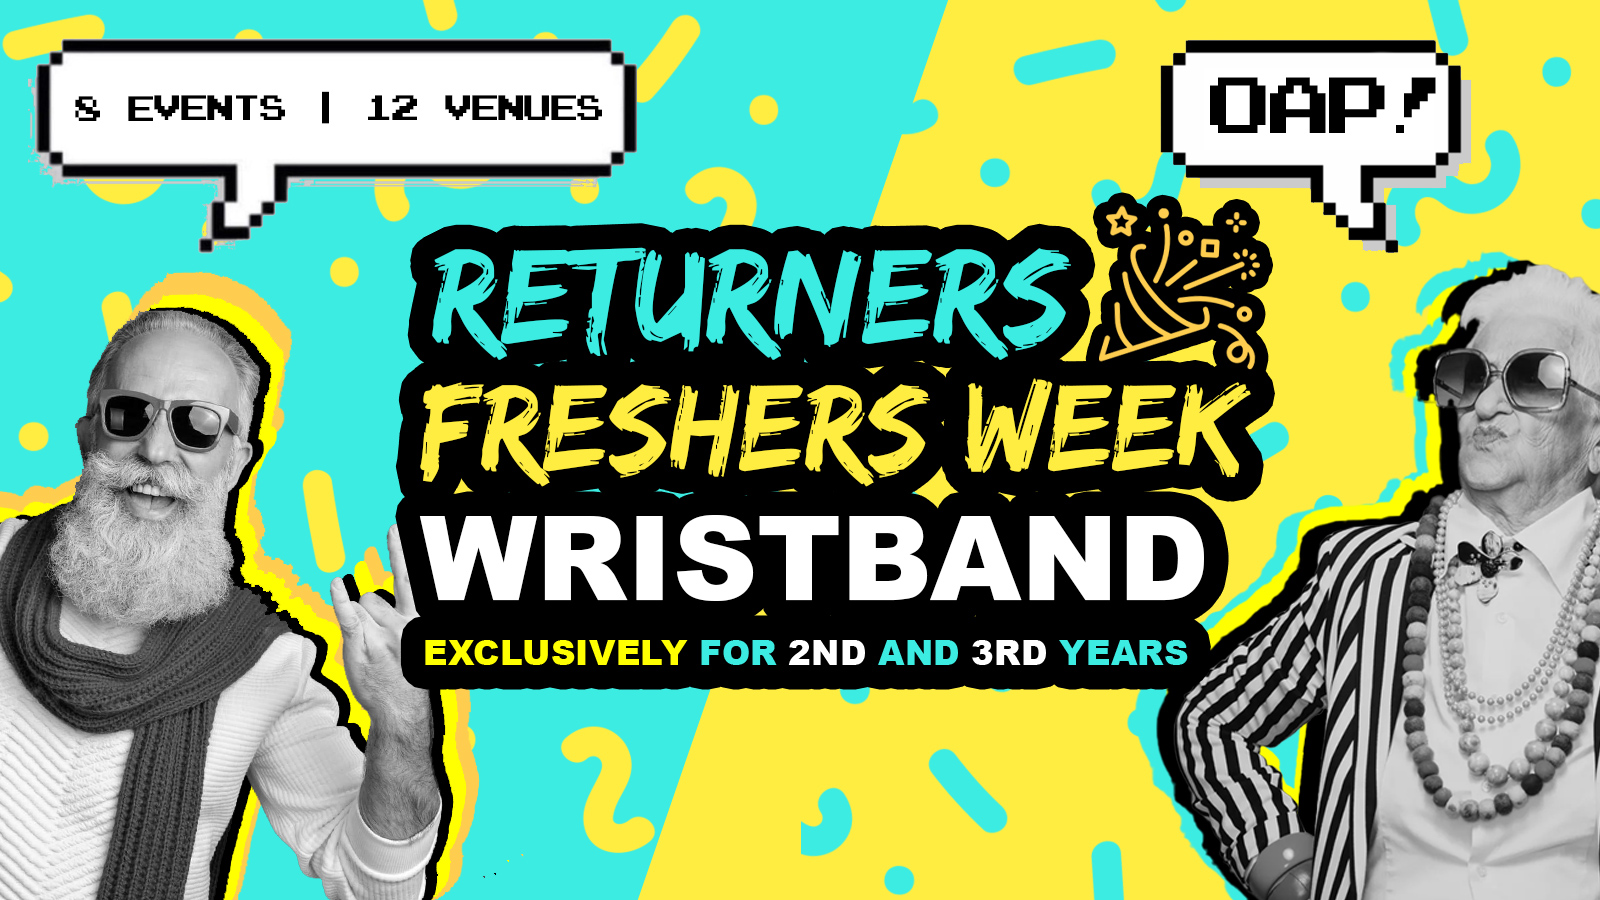 Uni of Manchester Returners Freshers Week Wristband 2021 | Exclusive for 2nd & 3rd Years